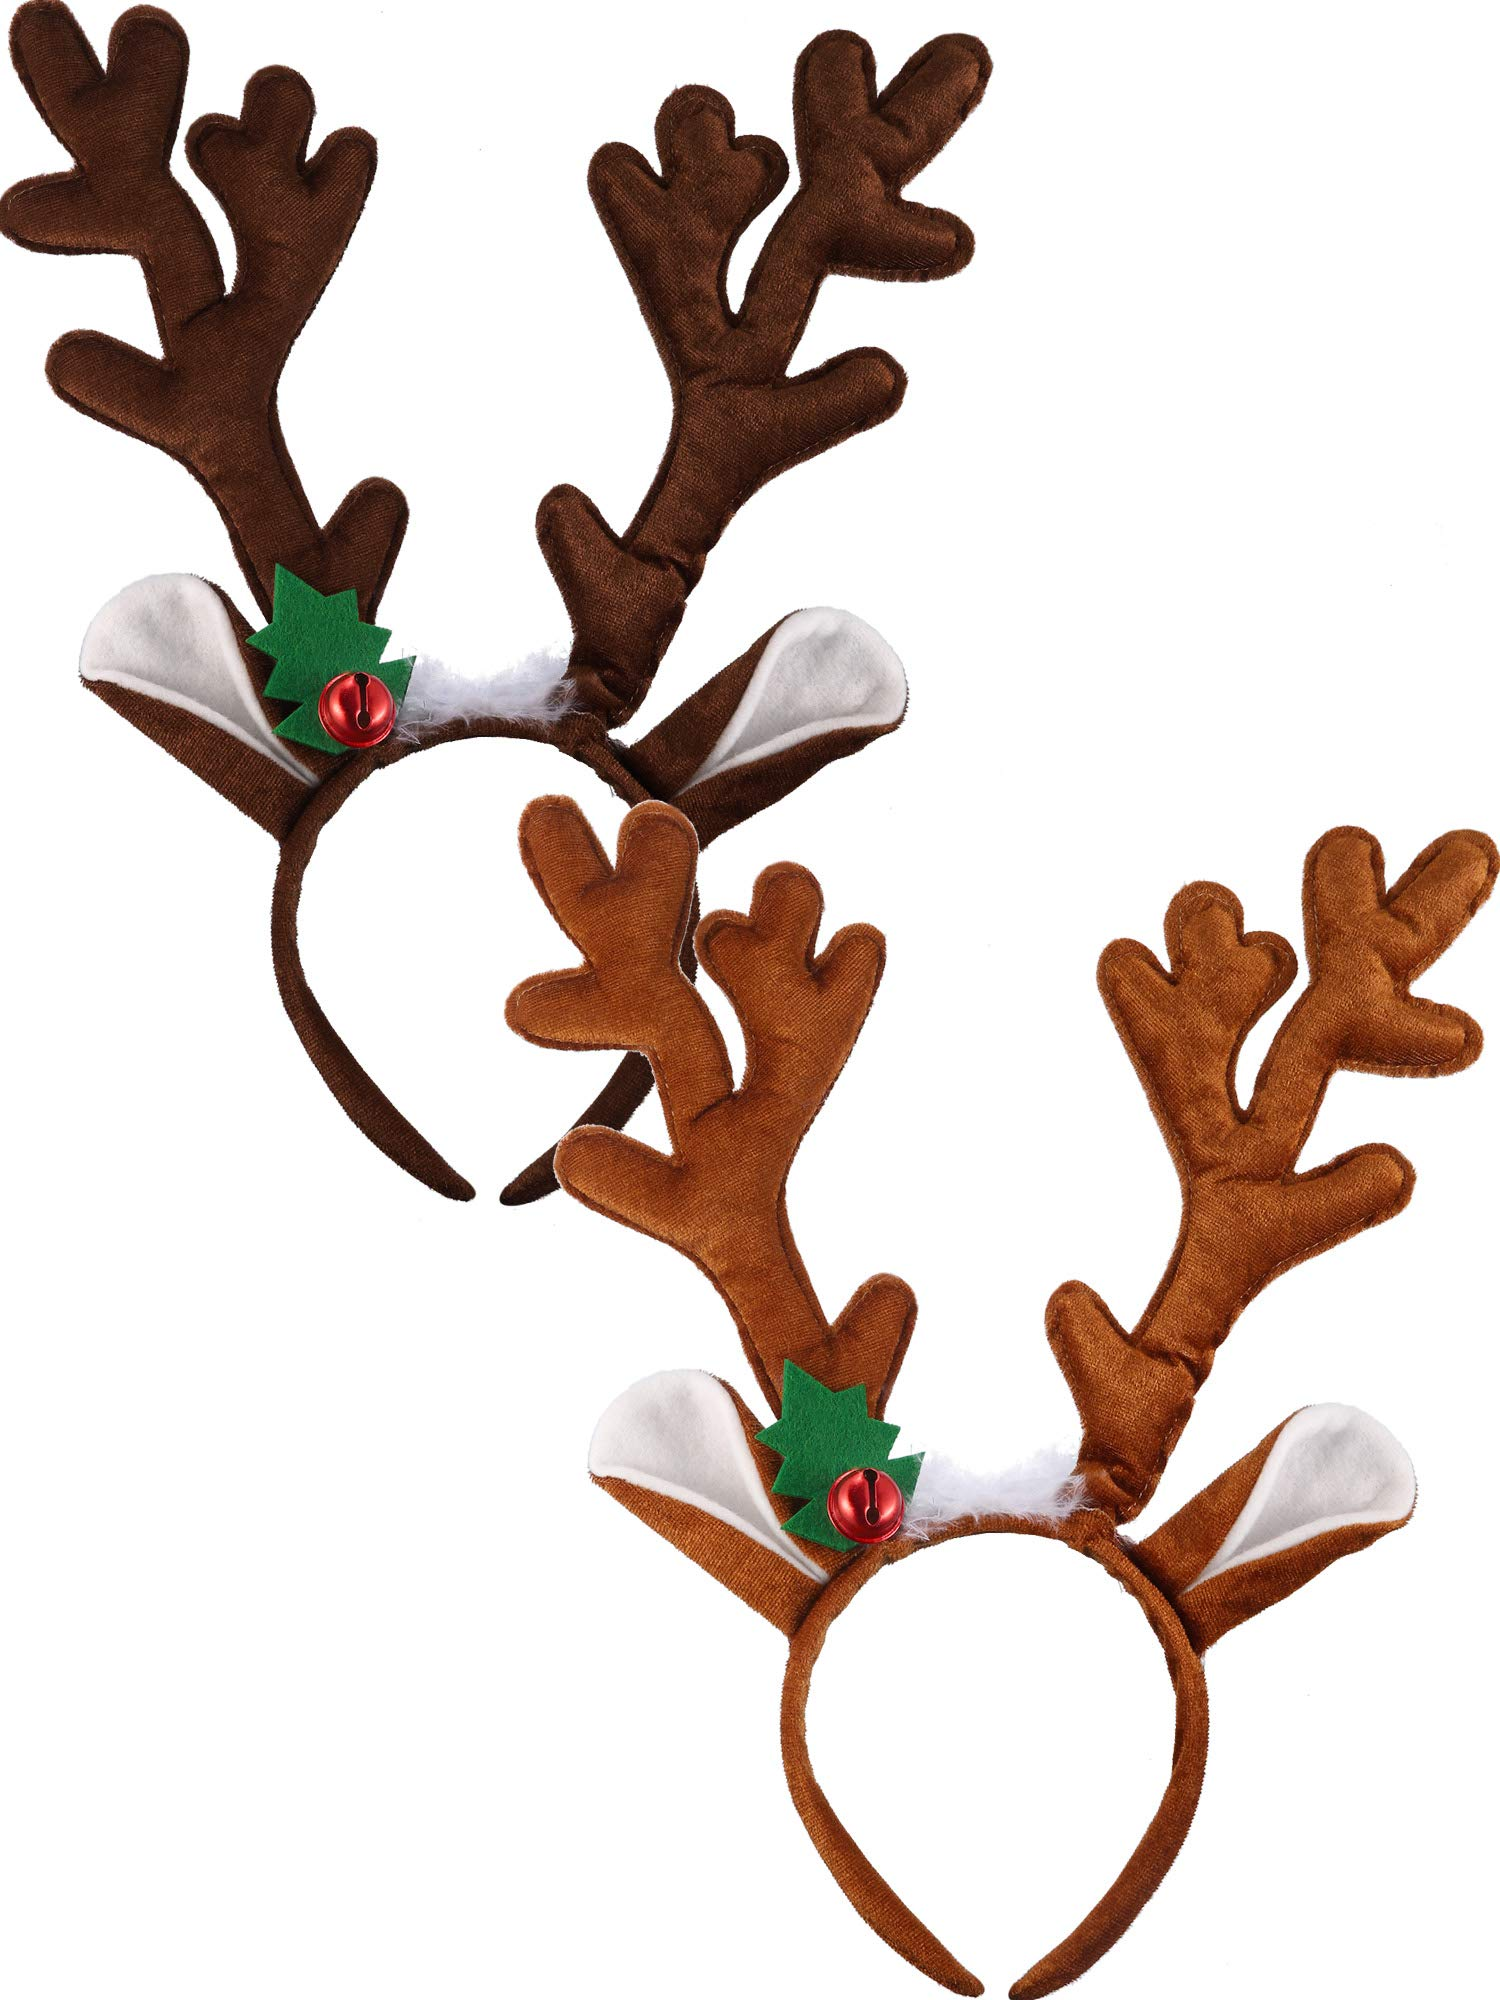 Bememo 2 Pieces Antler Headband Reindeer Headband Christmas Easter Headwear with Ears (Style A) Dark Brown, Light Brown by Bememo